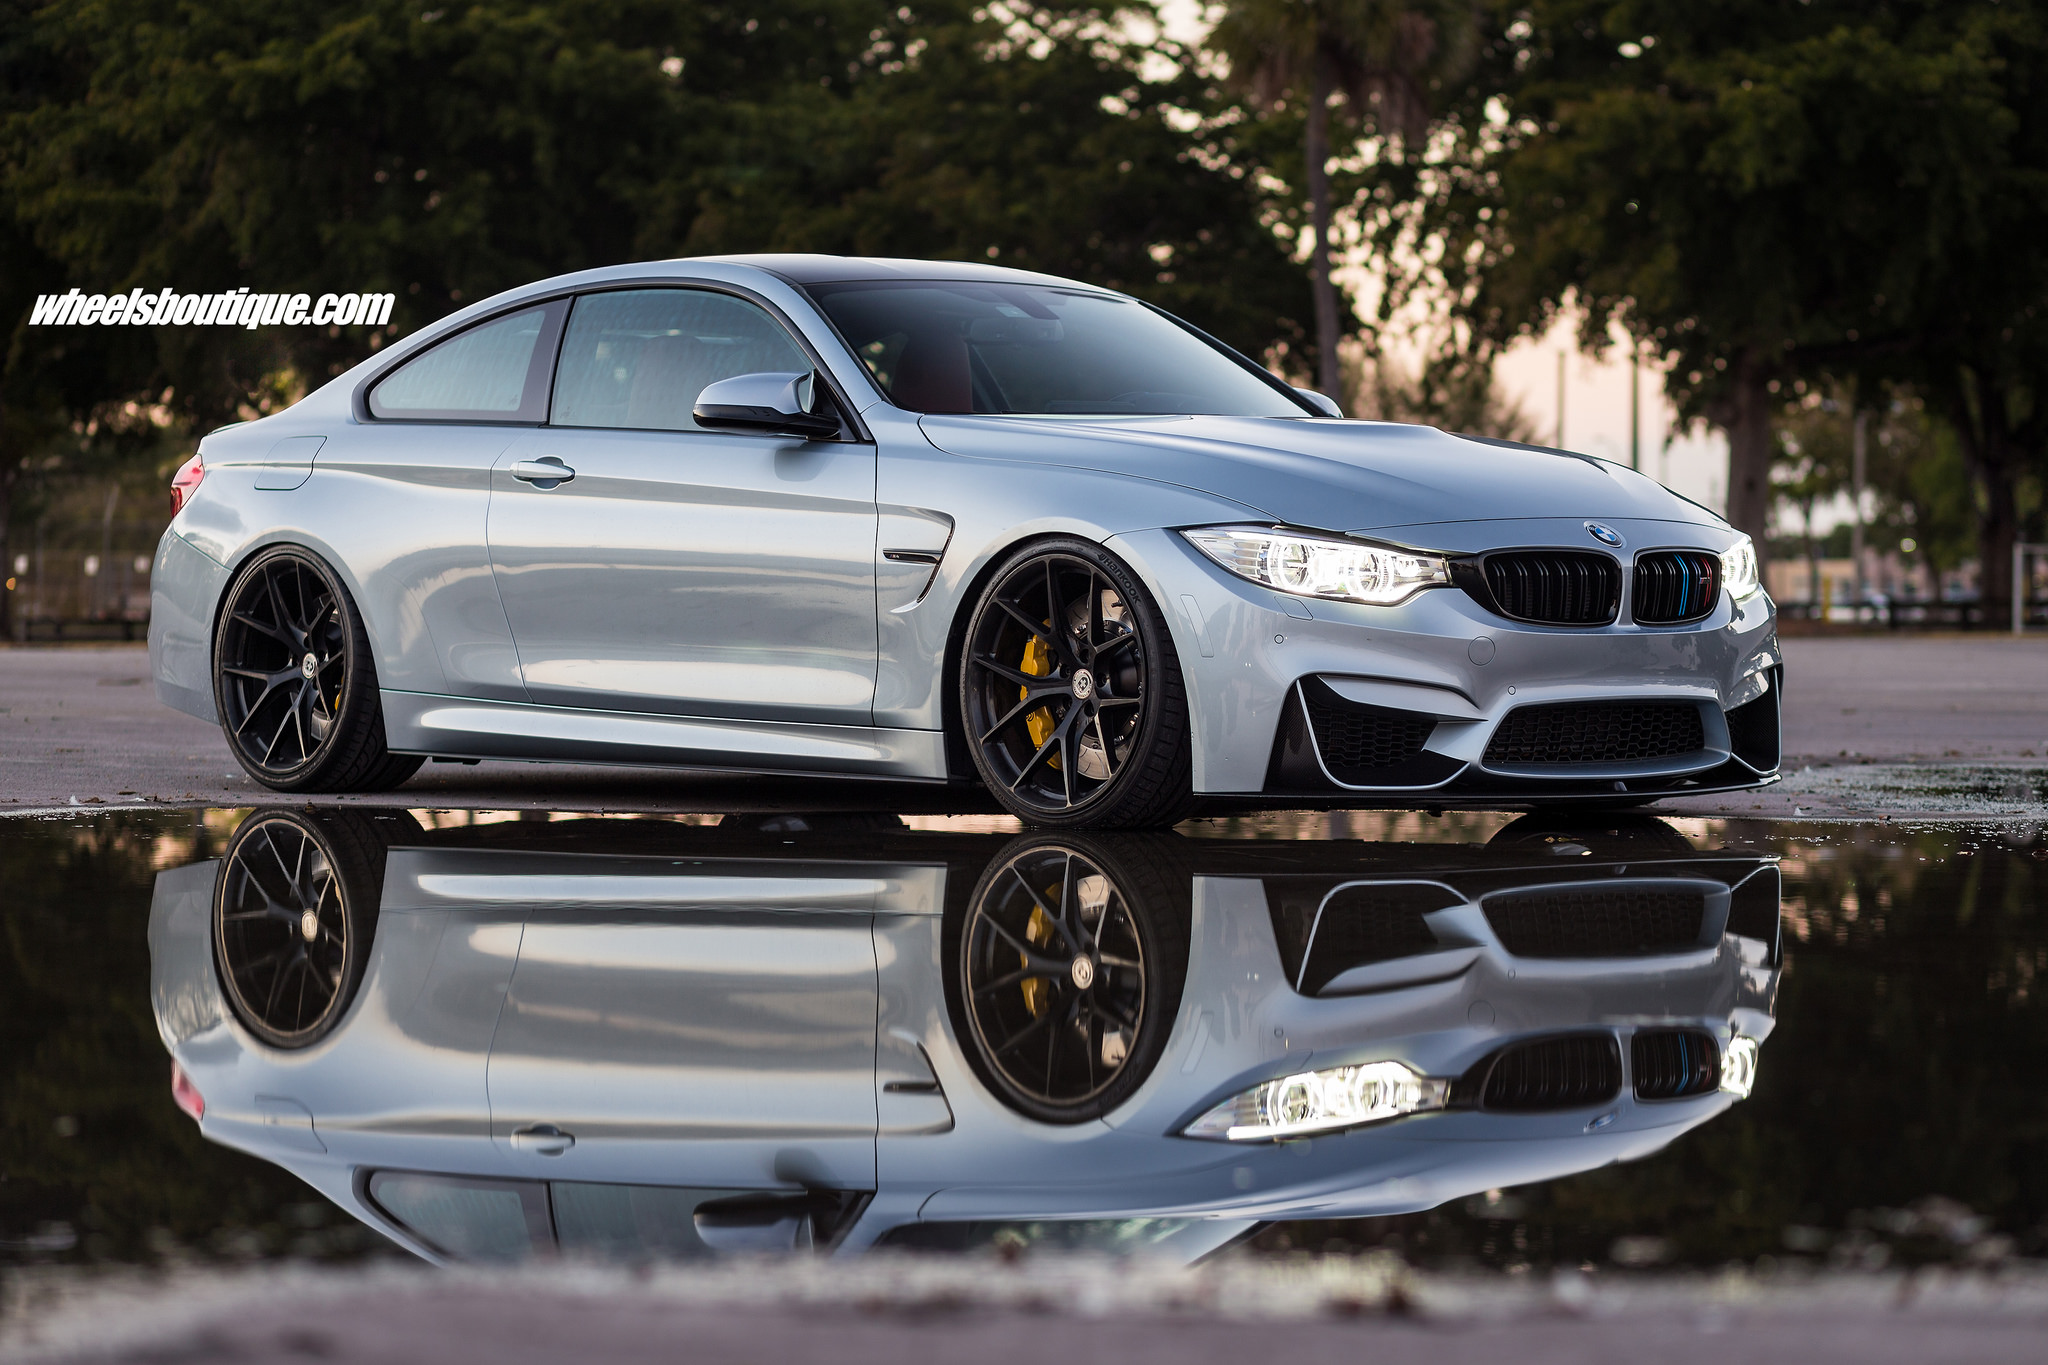 Silverstone Metallic II BMW M4 With HRE P101 Wheels By ...